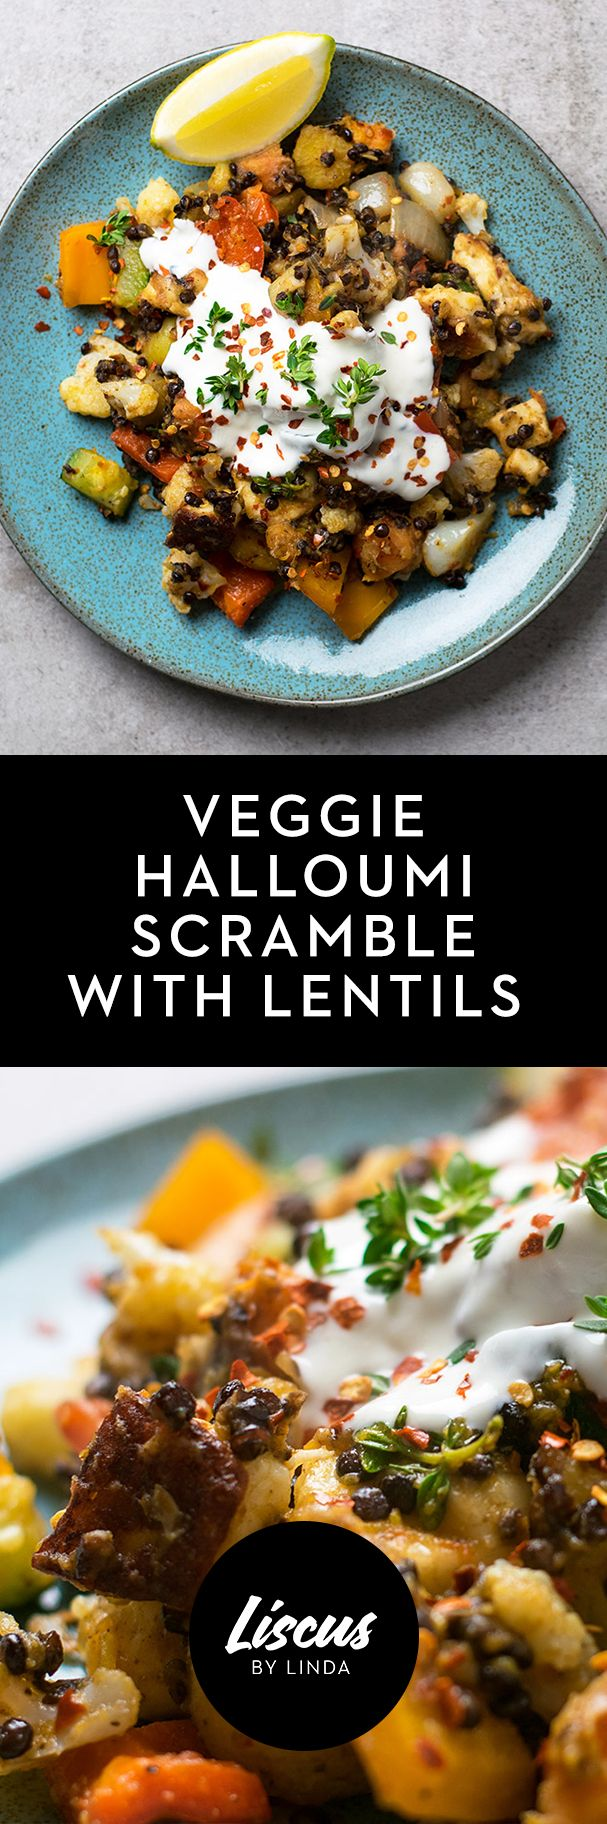 Veggie Halloumi Scramble with Lentils